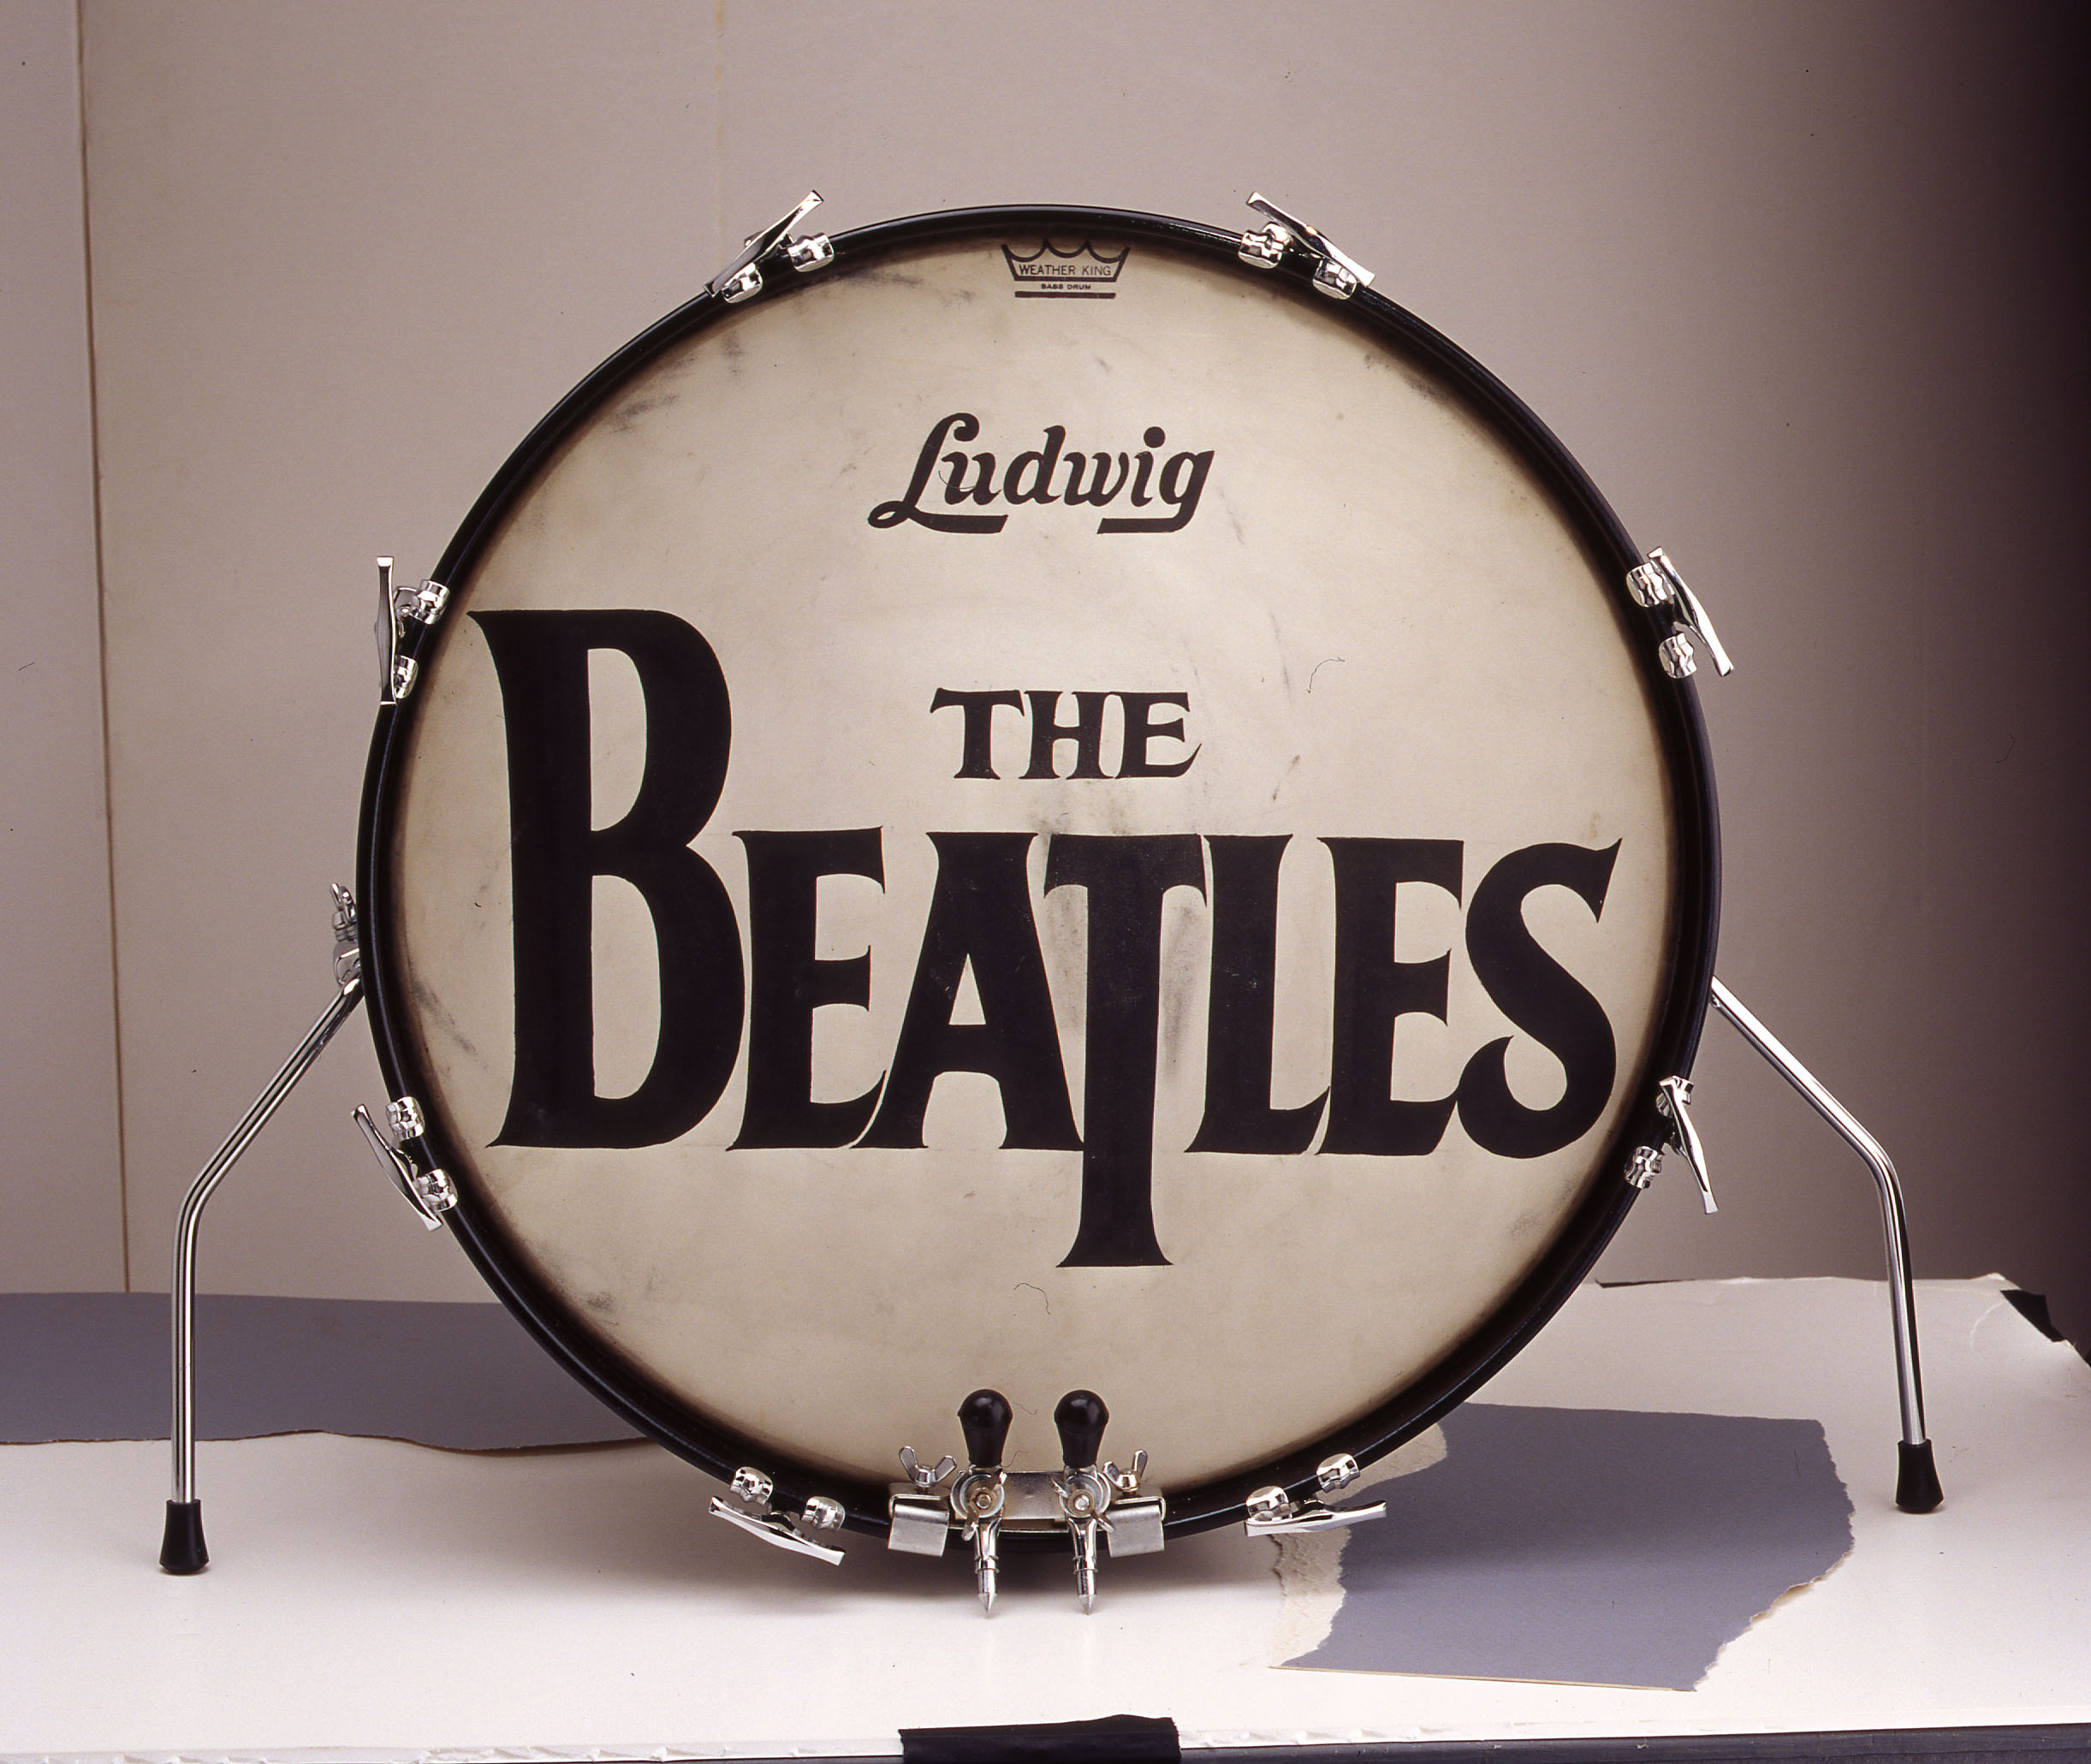 Bass Drum Head sold for $2.1 million